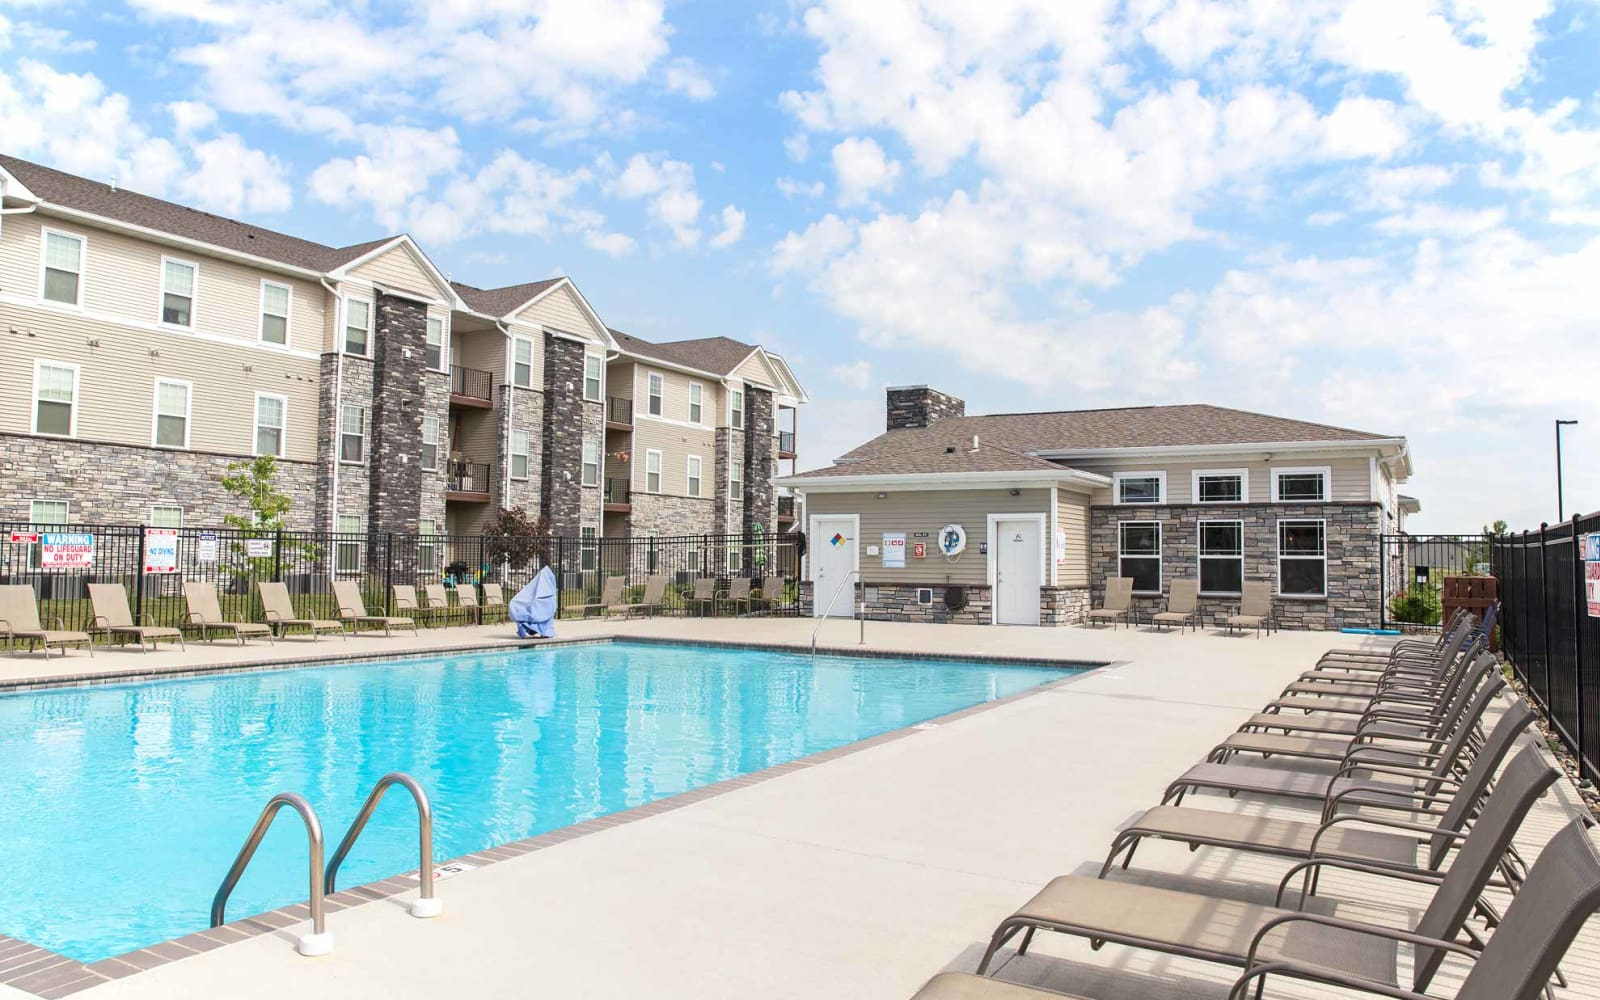 Large community pool with pool side seating at Ironwood in Altoona, Iowa